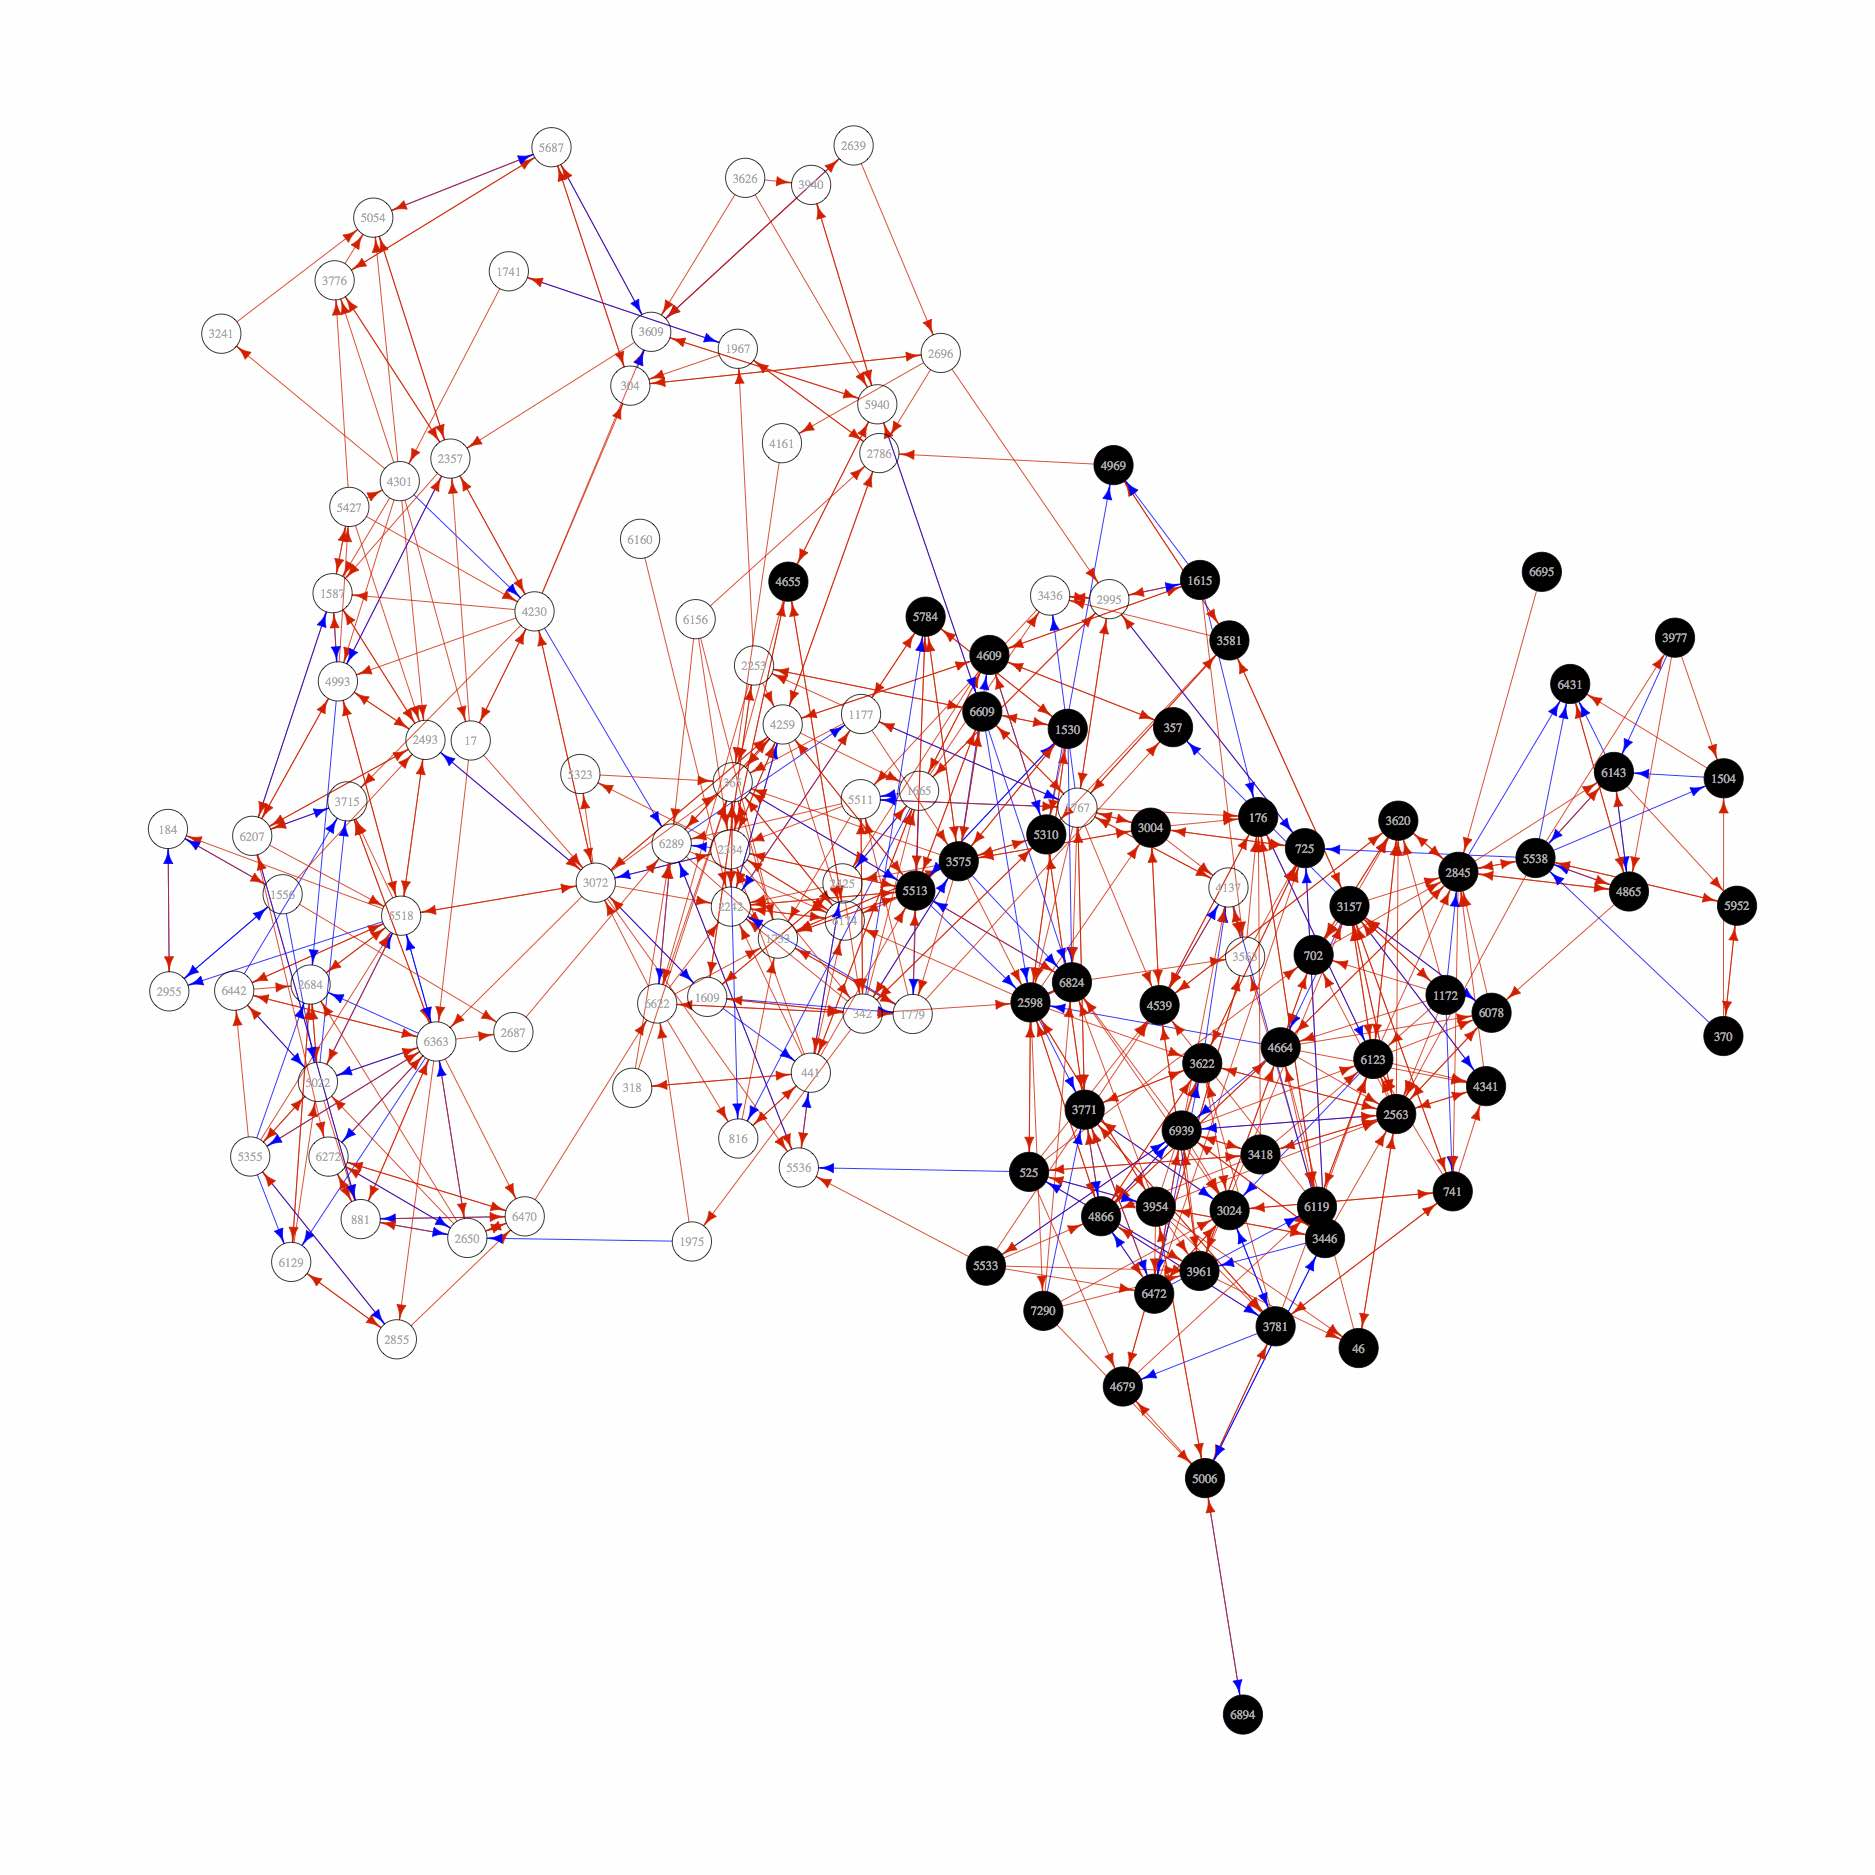 360° Feedback Network Analysis (Perspective: Peers)